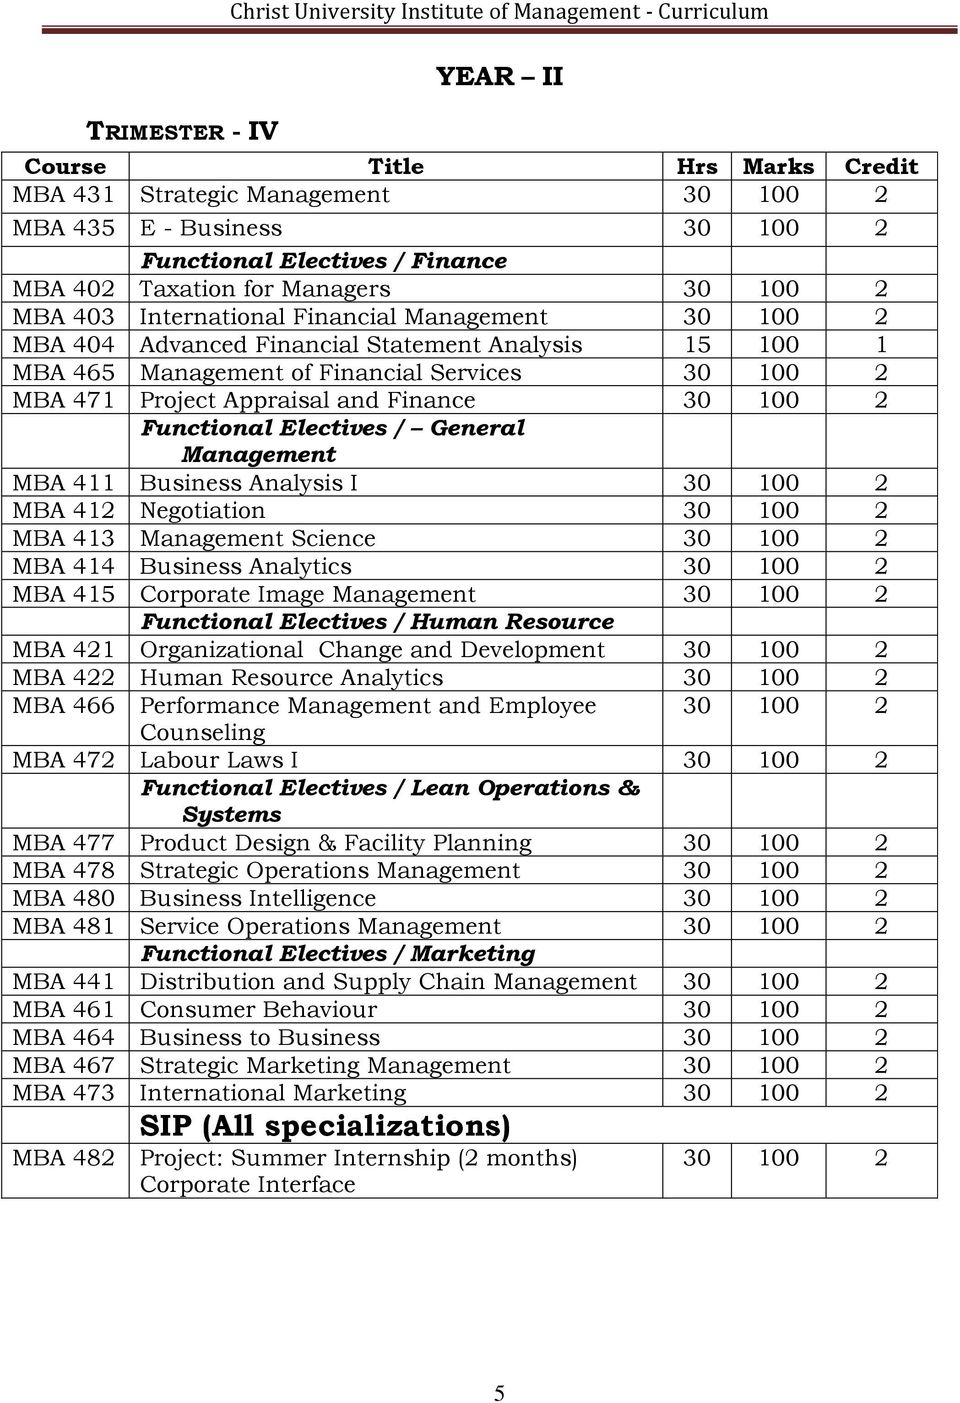 100 2 MBA 471 Project Appraisal and Finance 30 100 2 Functional Electives / General Management MBA 411 Business Analysis I 30 100 2 MBA 412 Negotiation 30 100 2 MBA 413 Management Science 30 100 2